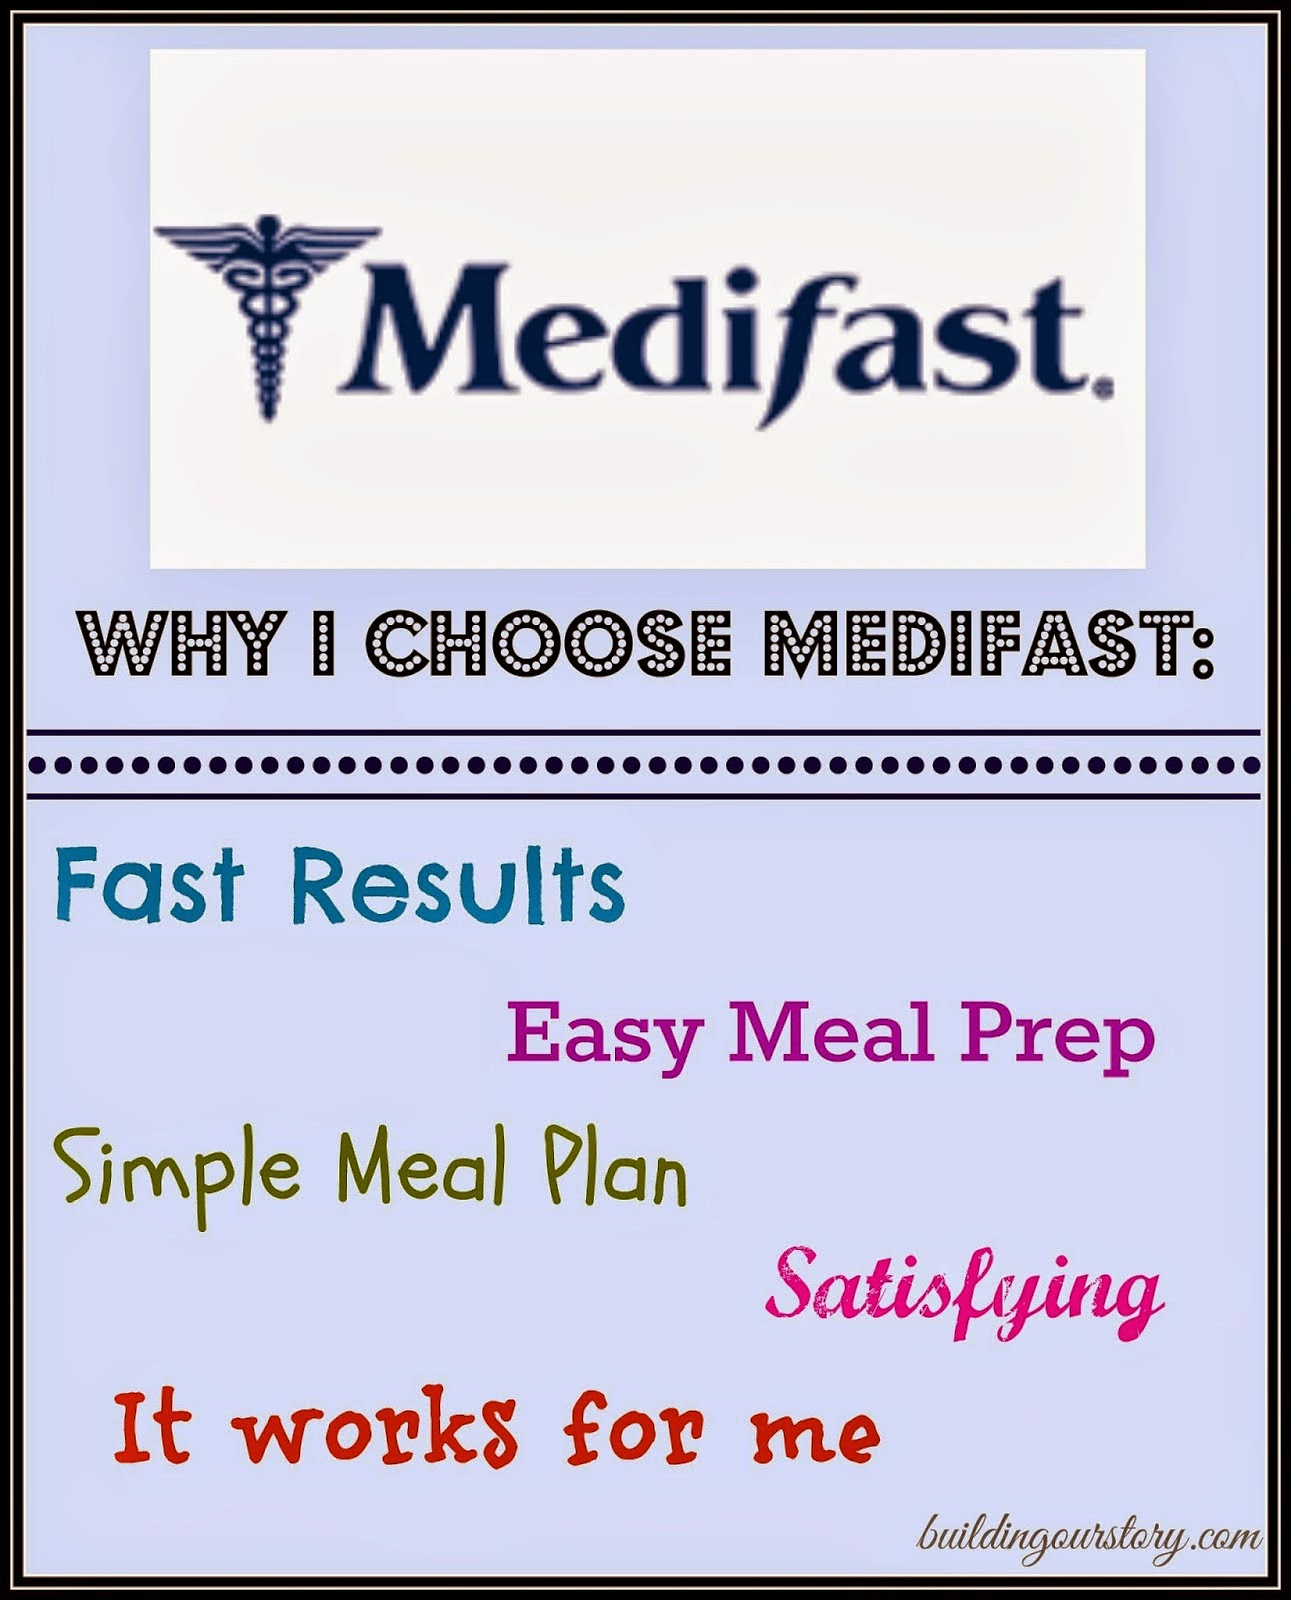 How does Medifast work?  Medifast diet.  Medifast vs. Jenny Craig.  Medifast vs. Weight Watchers.  Fast results with Medifast.  Weight Loss programs.  Medifast coupons.  Medifast coupon codes.  Why I choose Medifast.  Medifast discounts.  Medifast Success Stories.